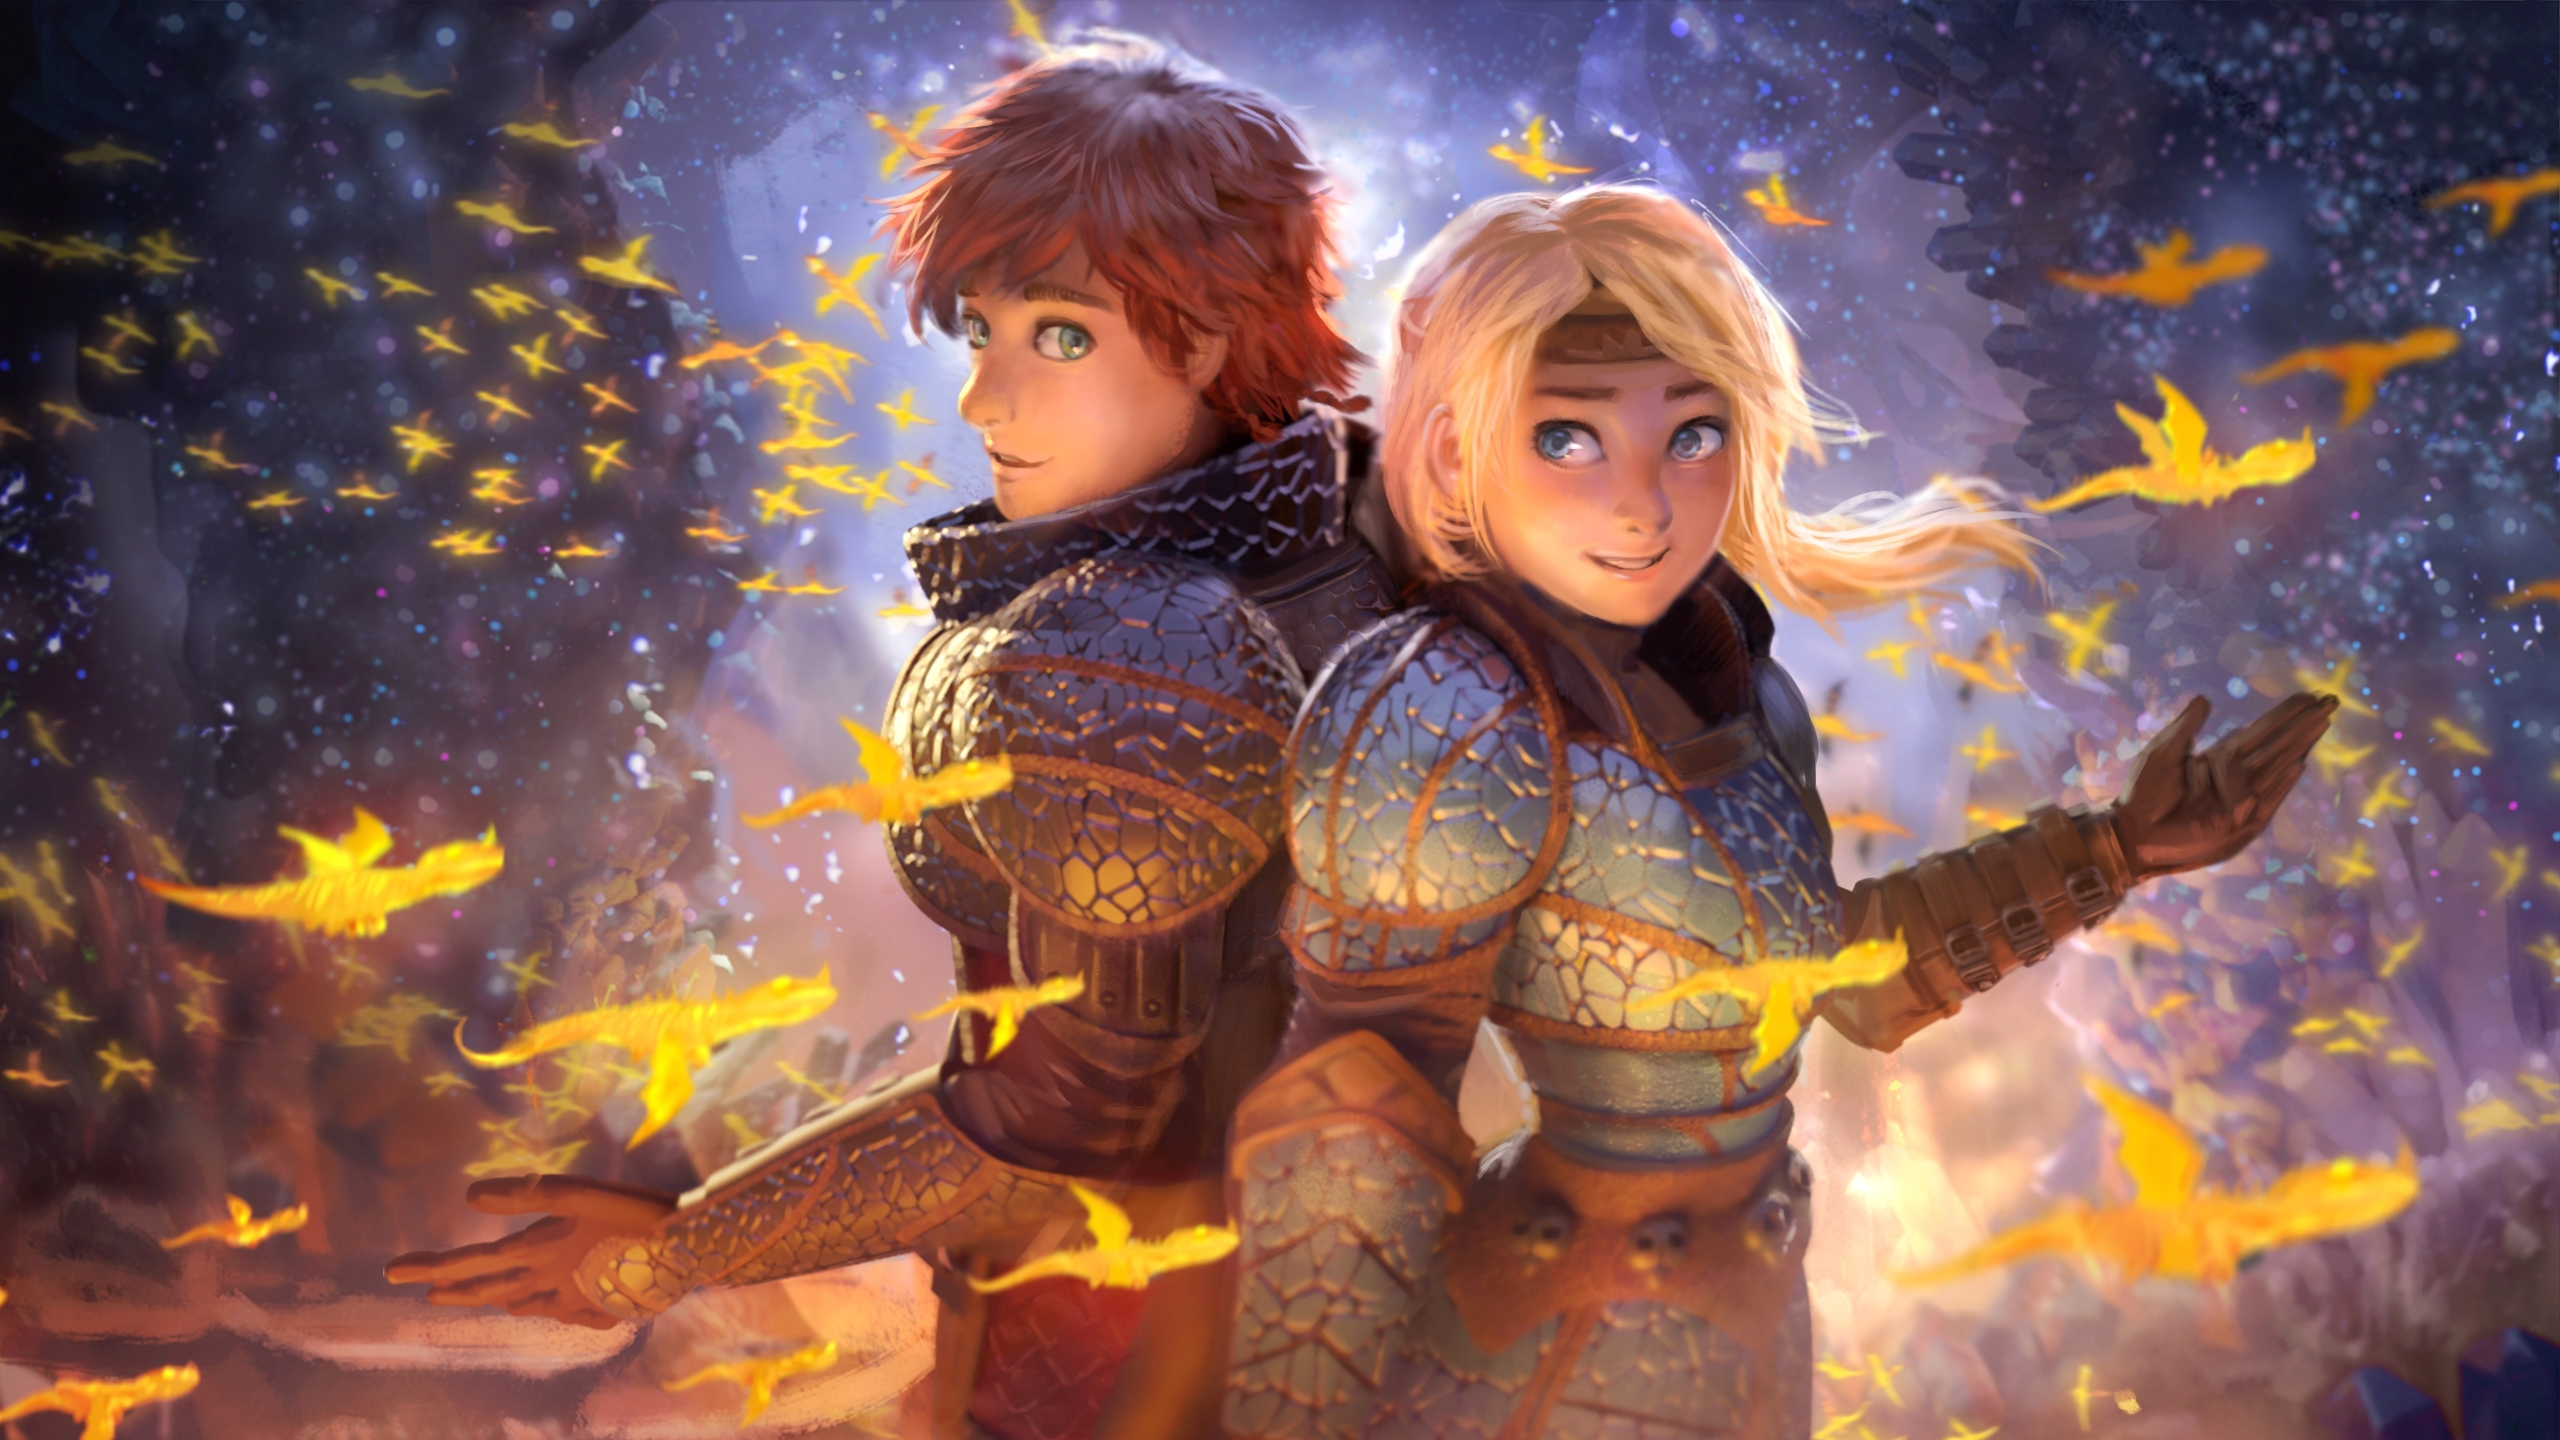 2560x1440 How To Train Your Dragon The Hidden World Movie 1440p